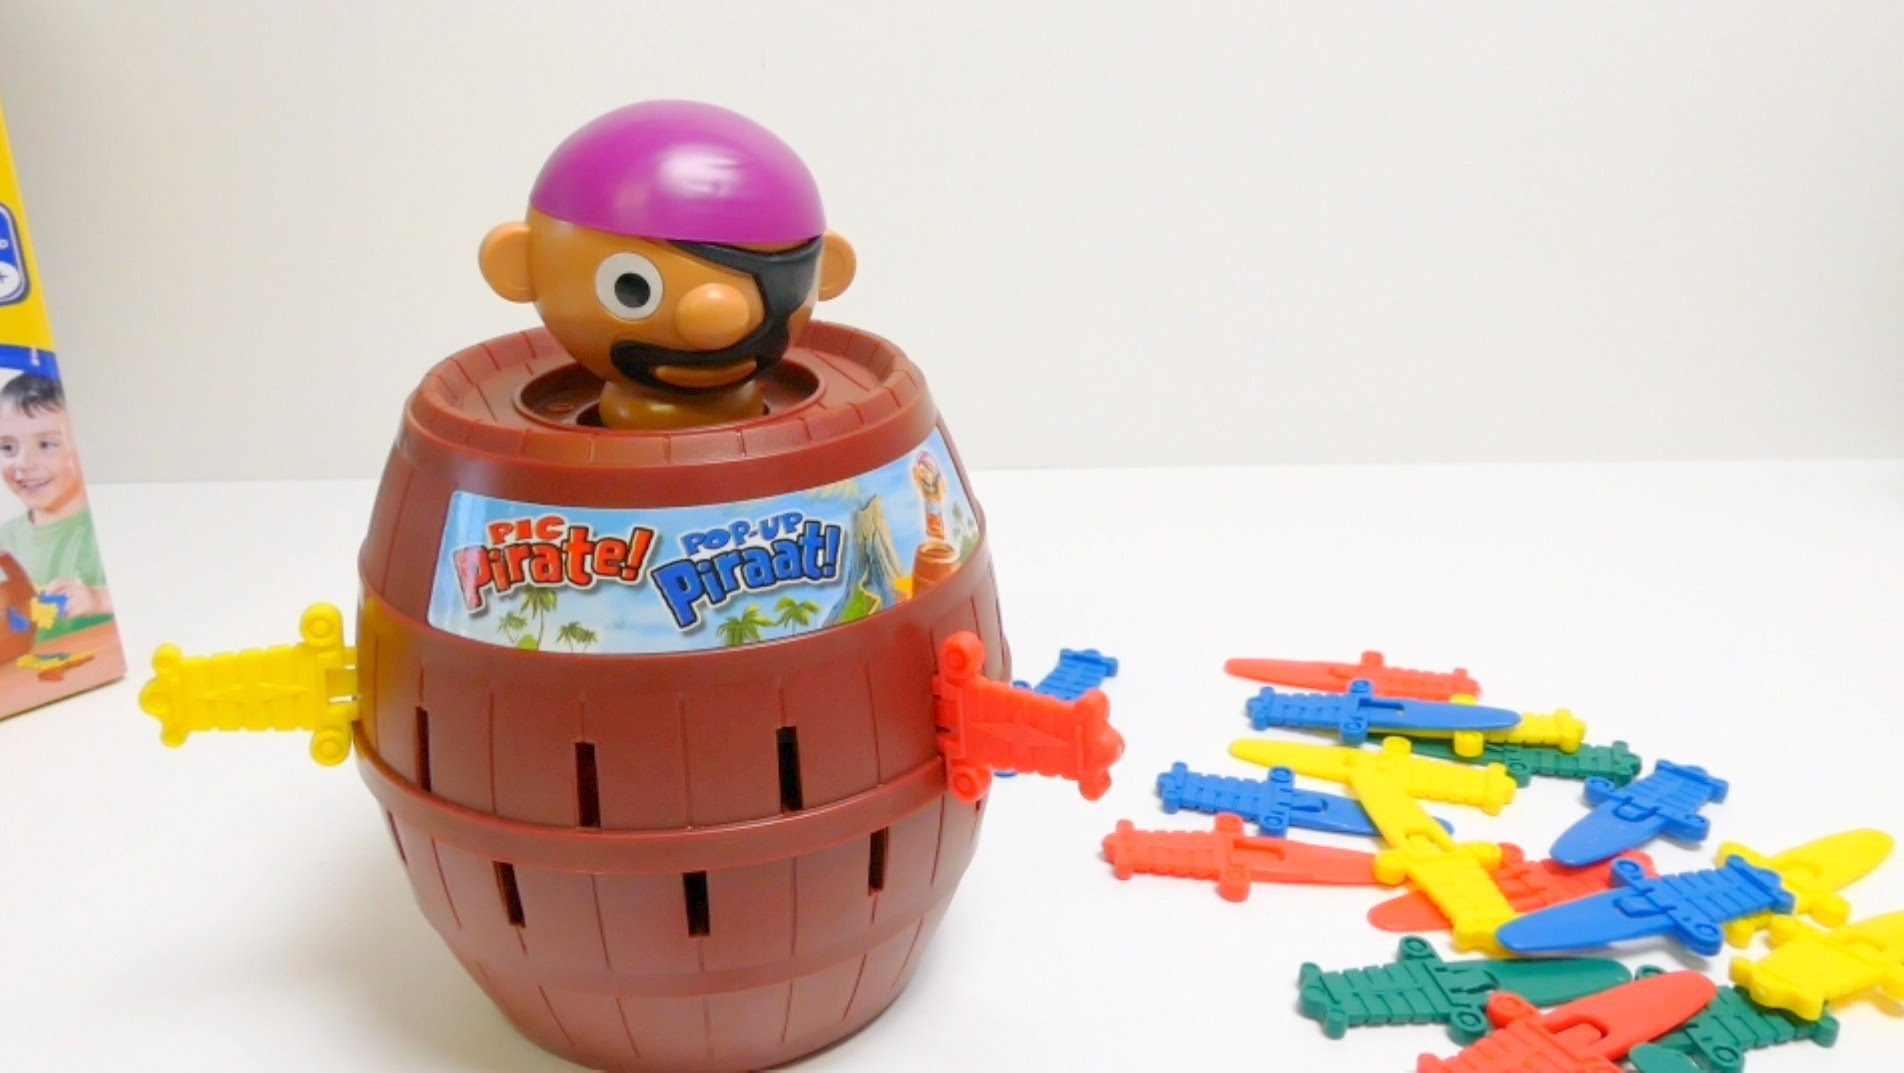 tomy pic pirate